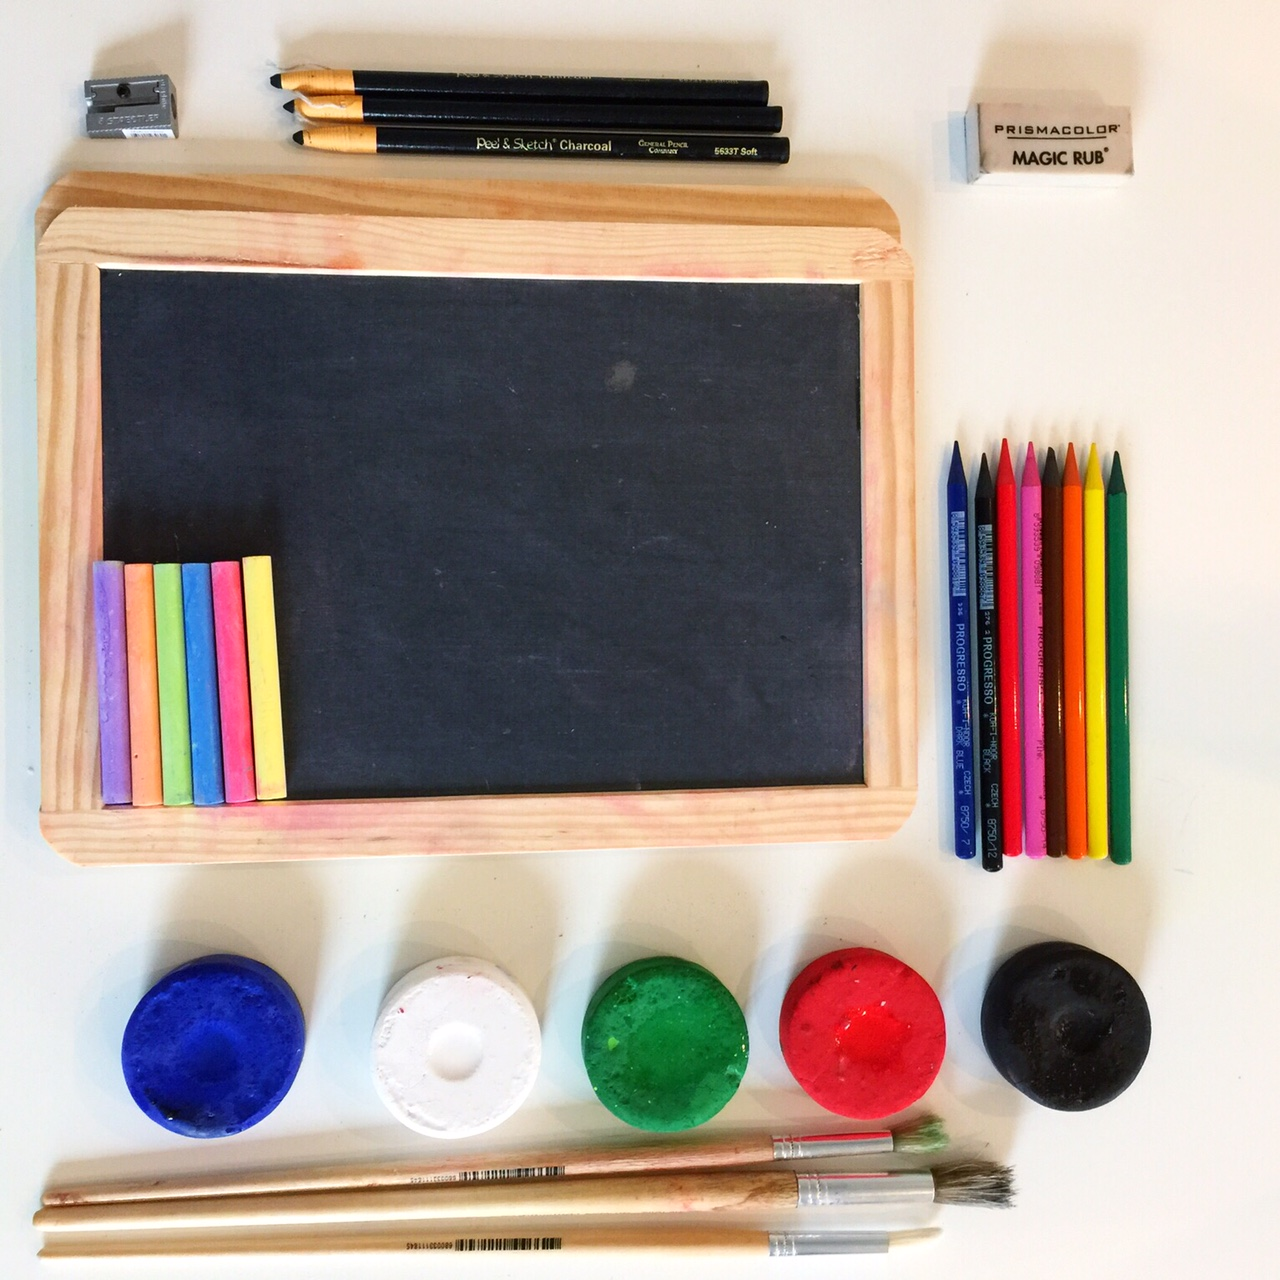 Zero waste arts and crafts supplies for kids